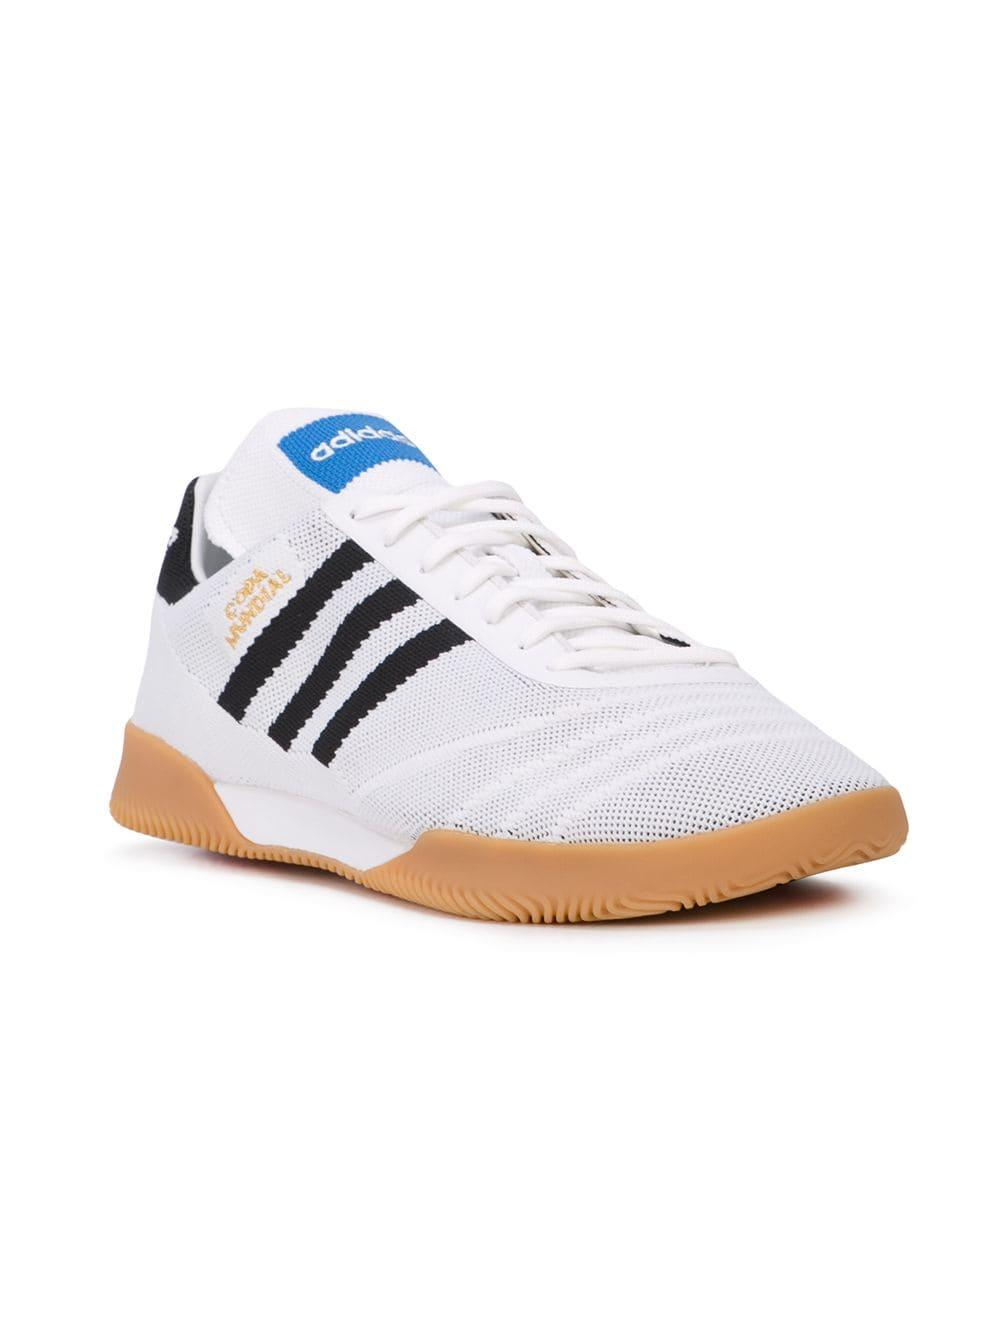 3b7564fe1cac Lyst - Adidas Copa 70 Year Sneakers in White for Men